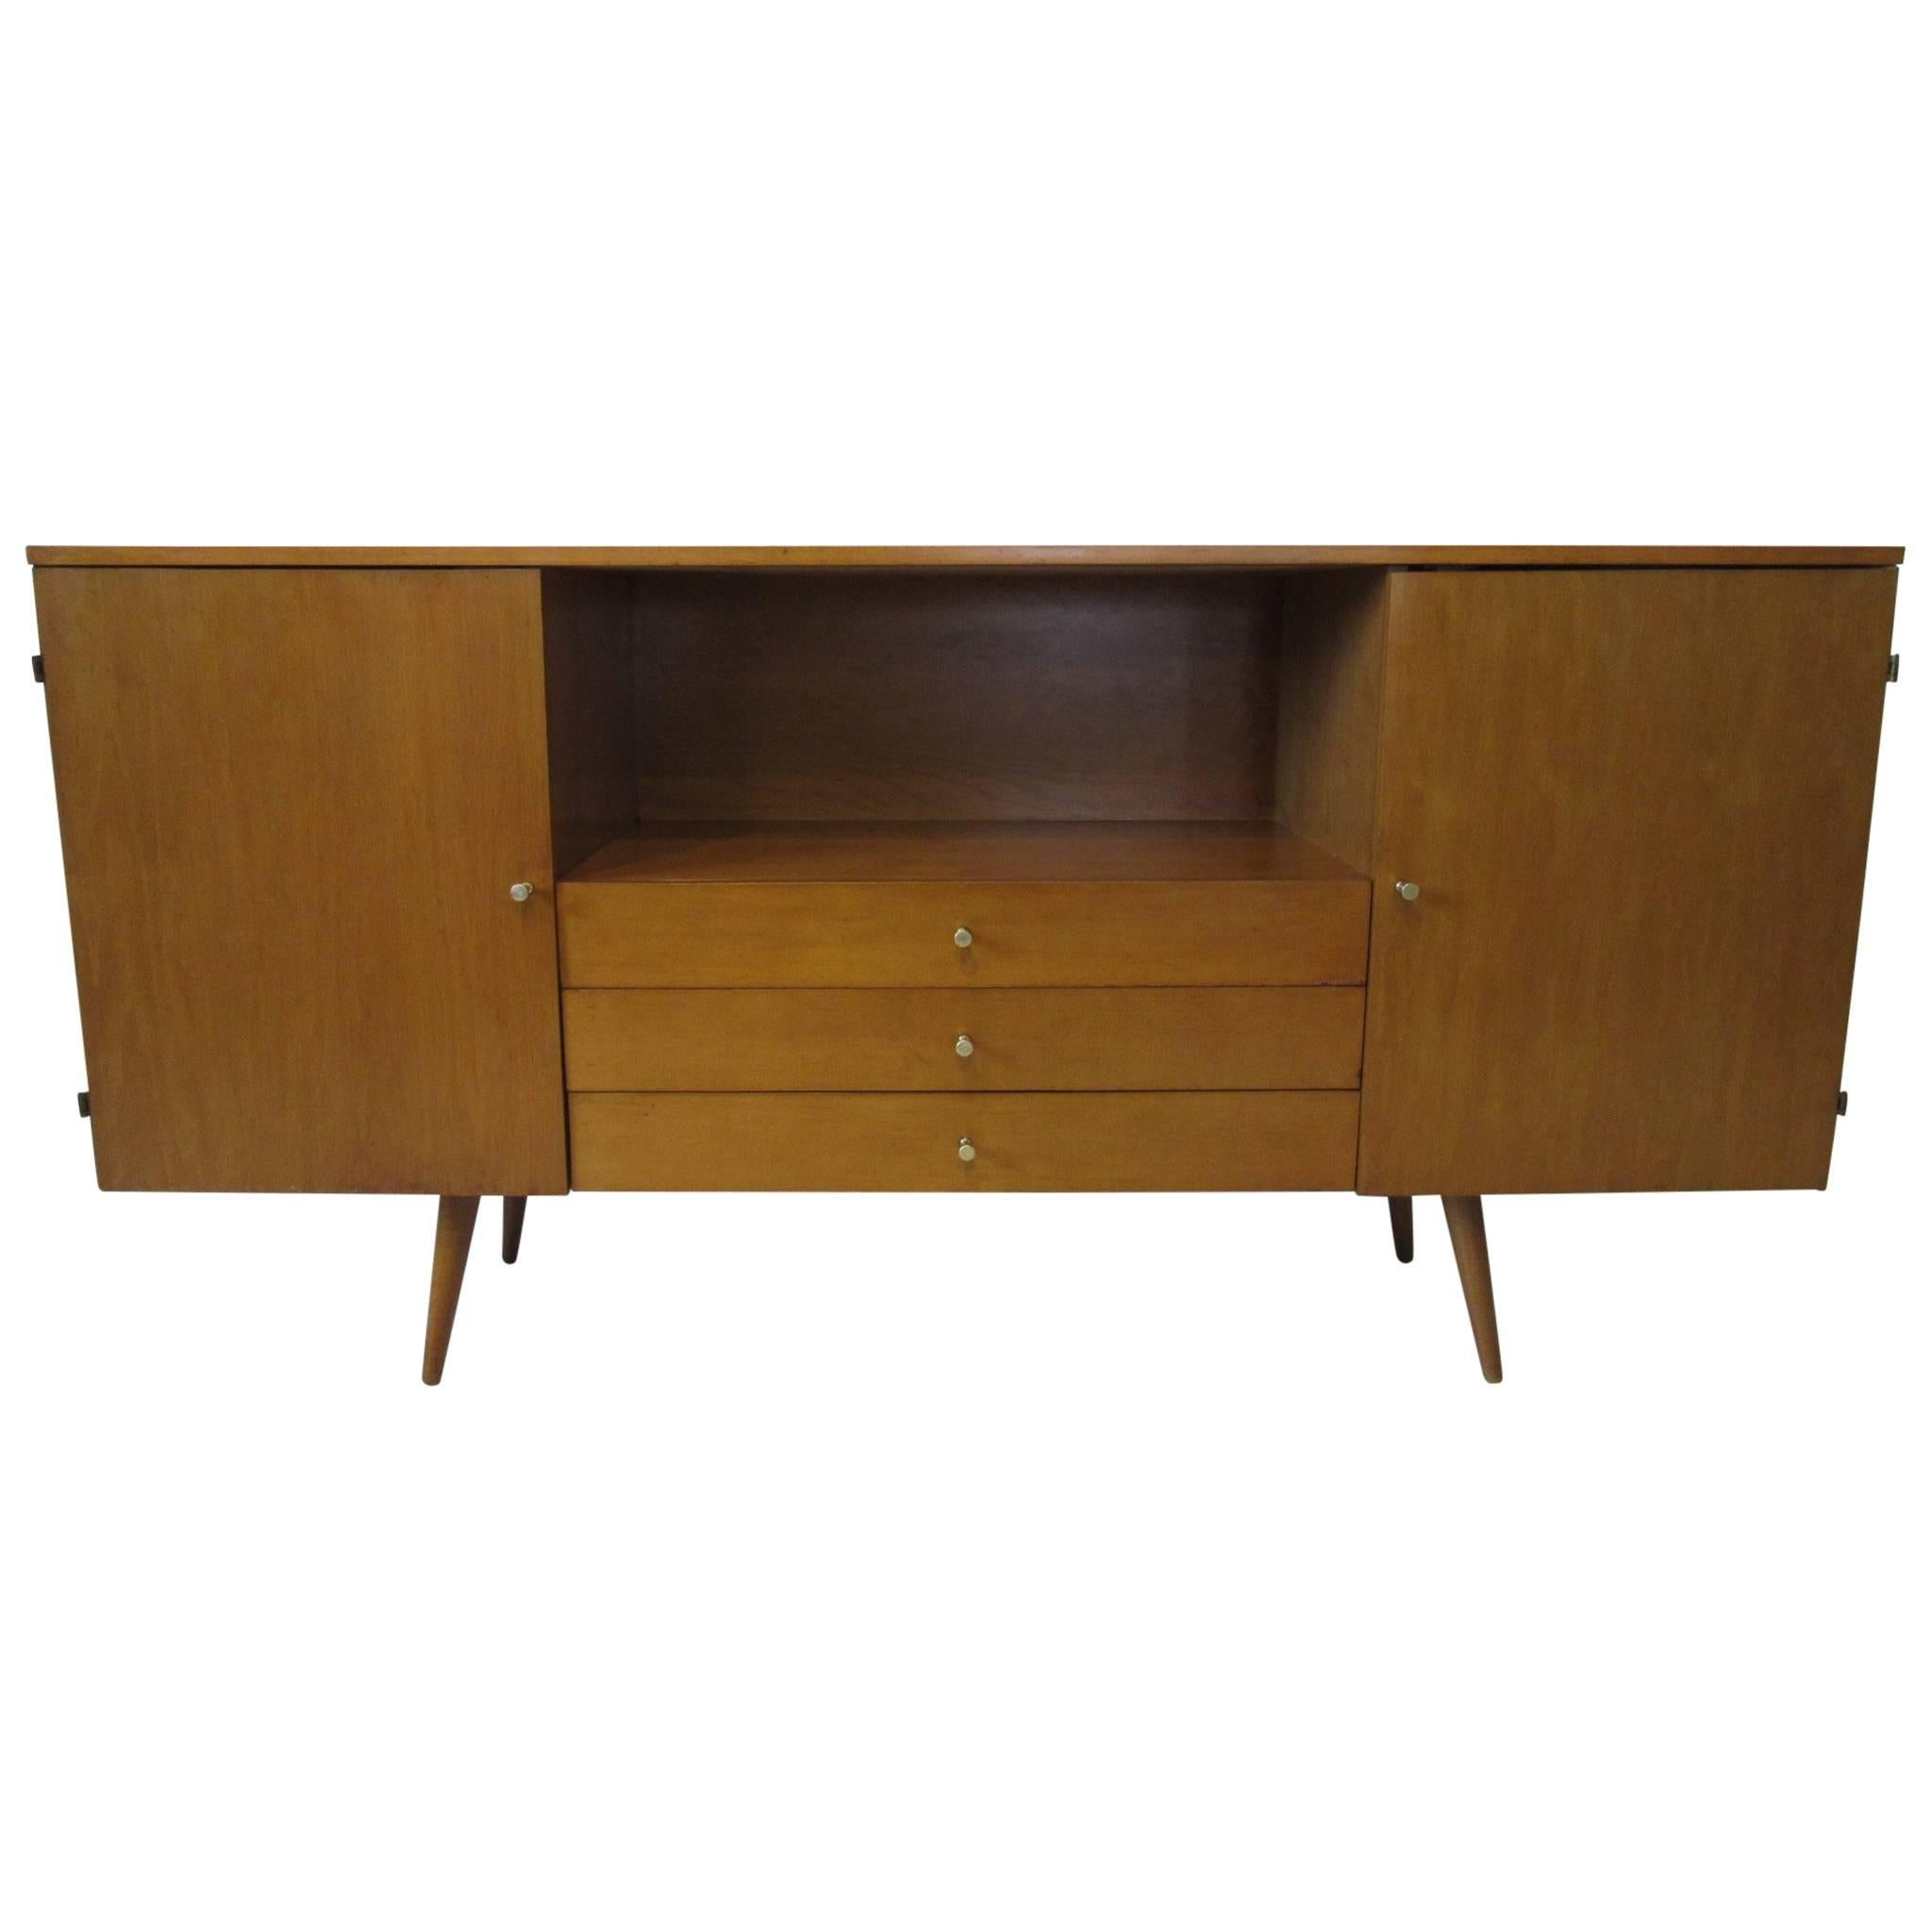 Paul Mccobb Credenza Or Server From The Planner Group For